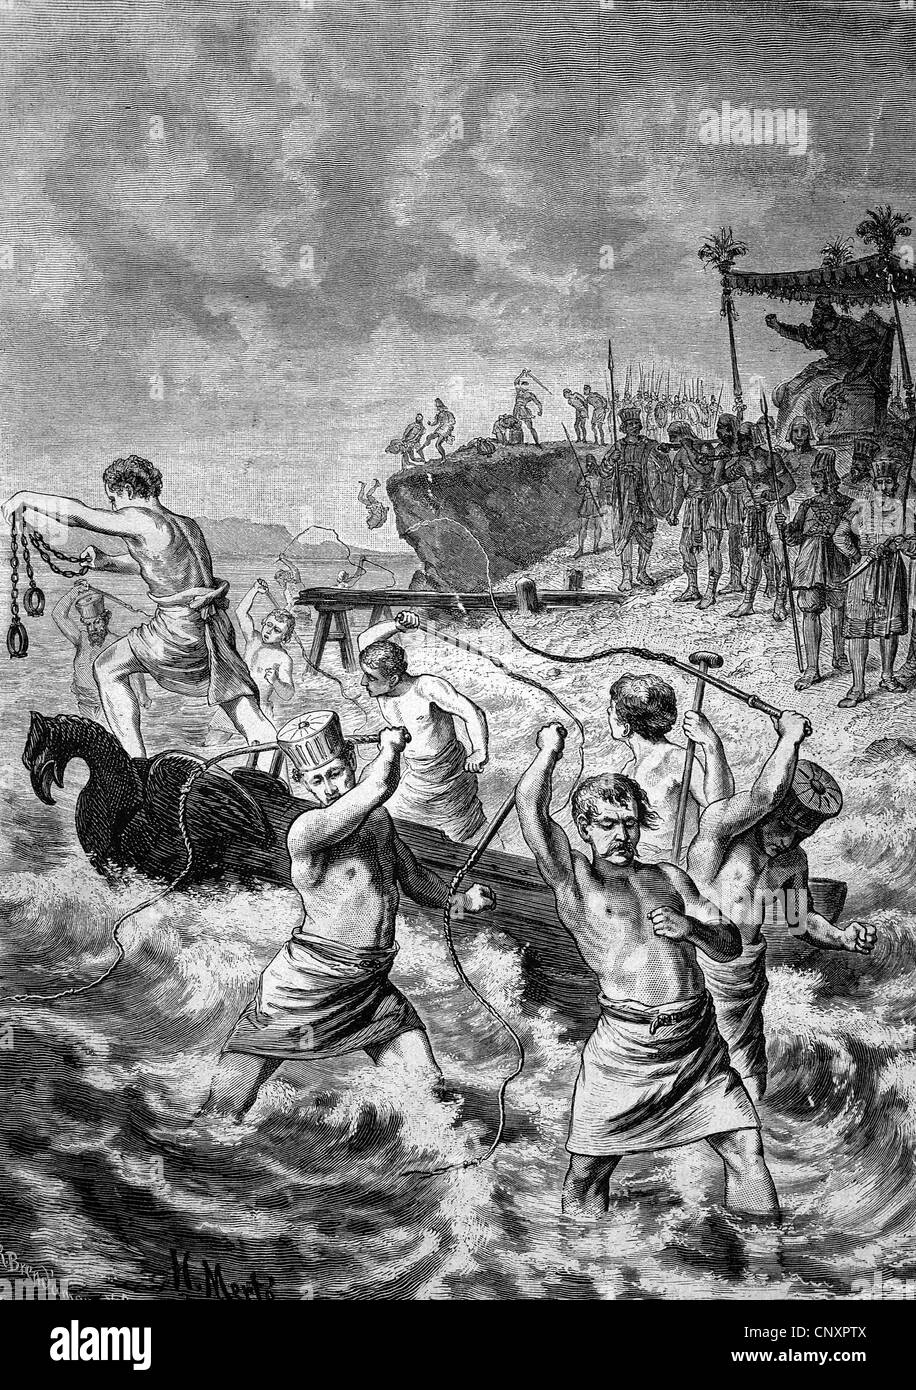 Xerxes giving the sea a whipping after the building of a bridge in the Dardanelles failed, 519 BC - 465 BC, Xerxes - Stock Image